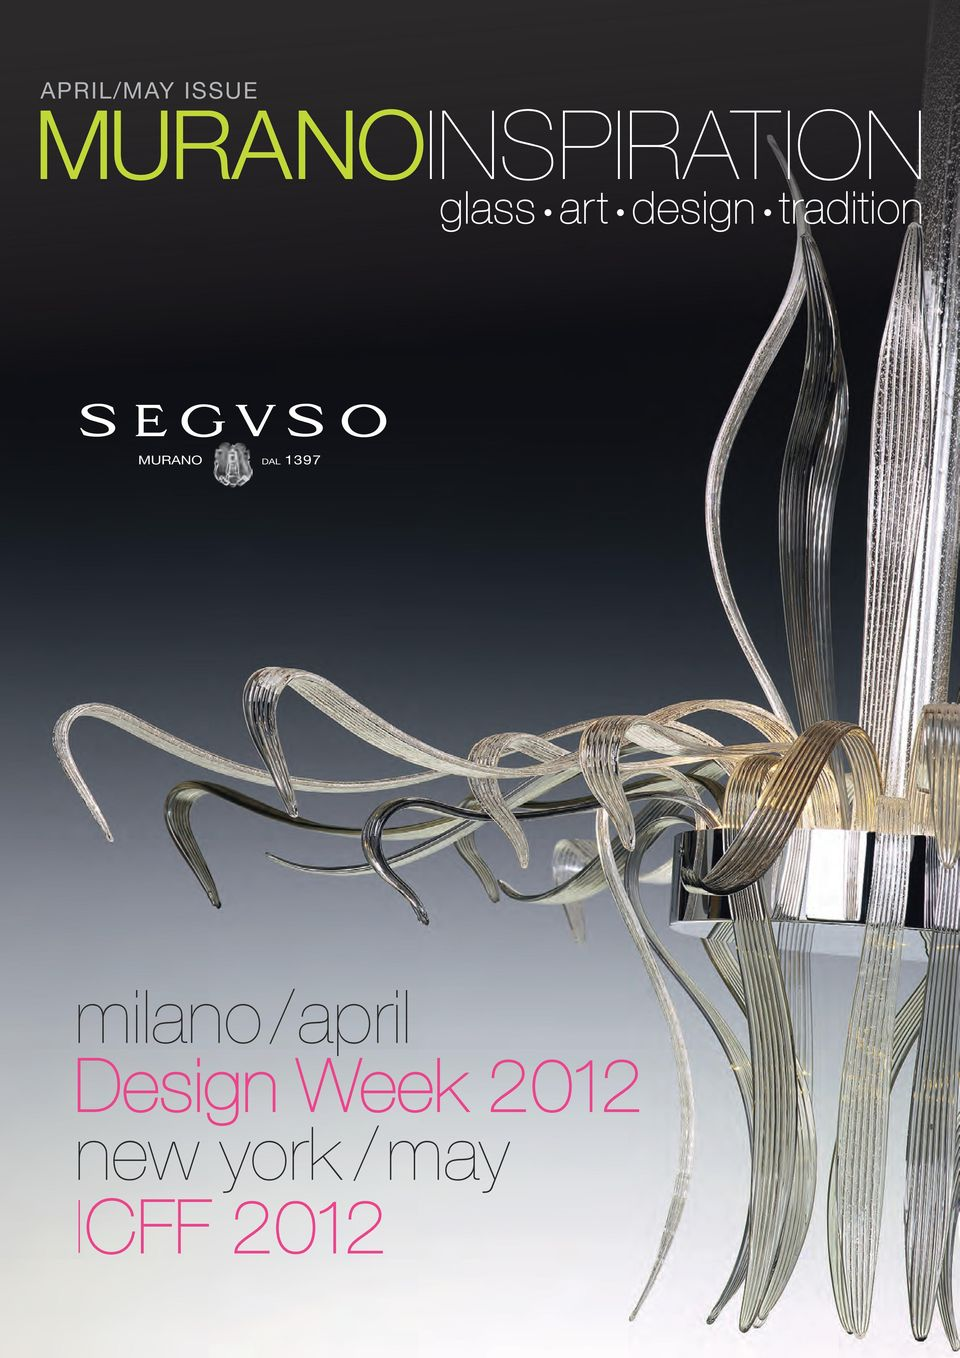 tradition milano/april Design Week